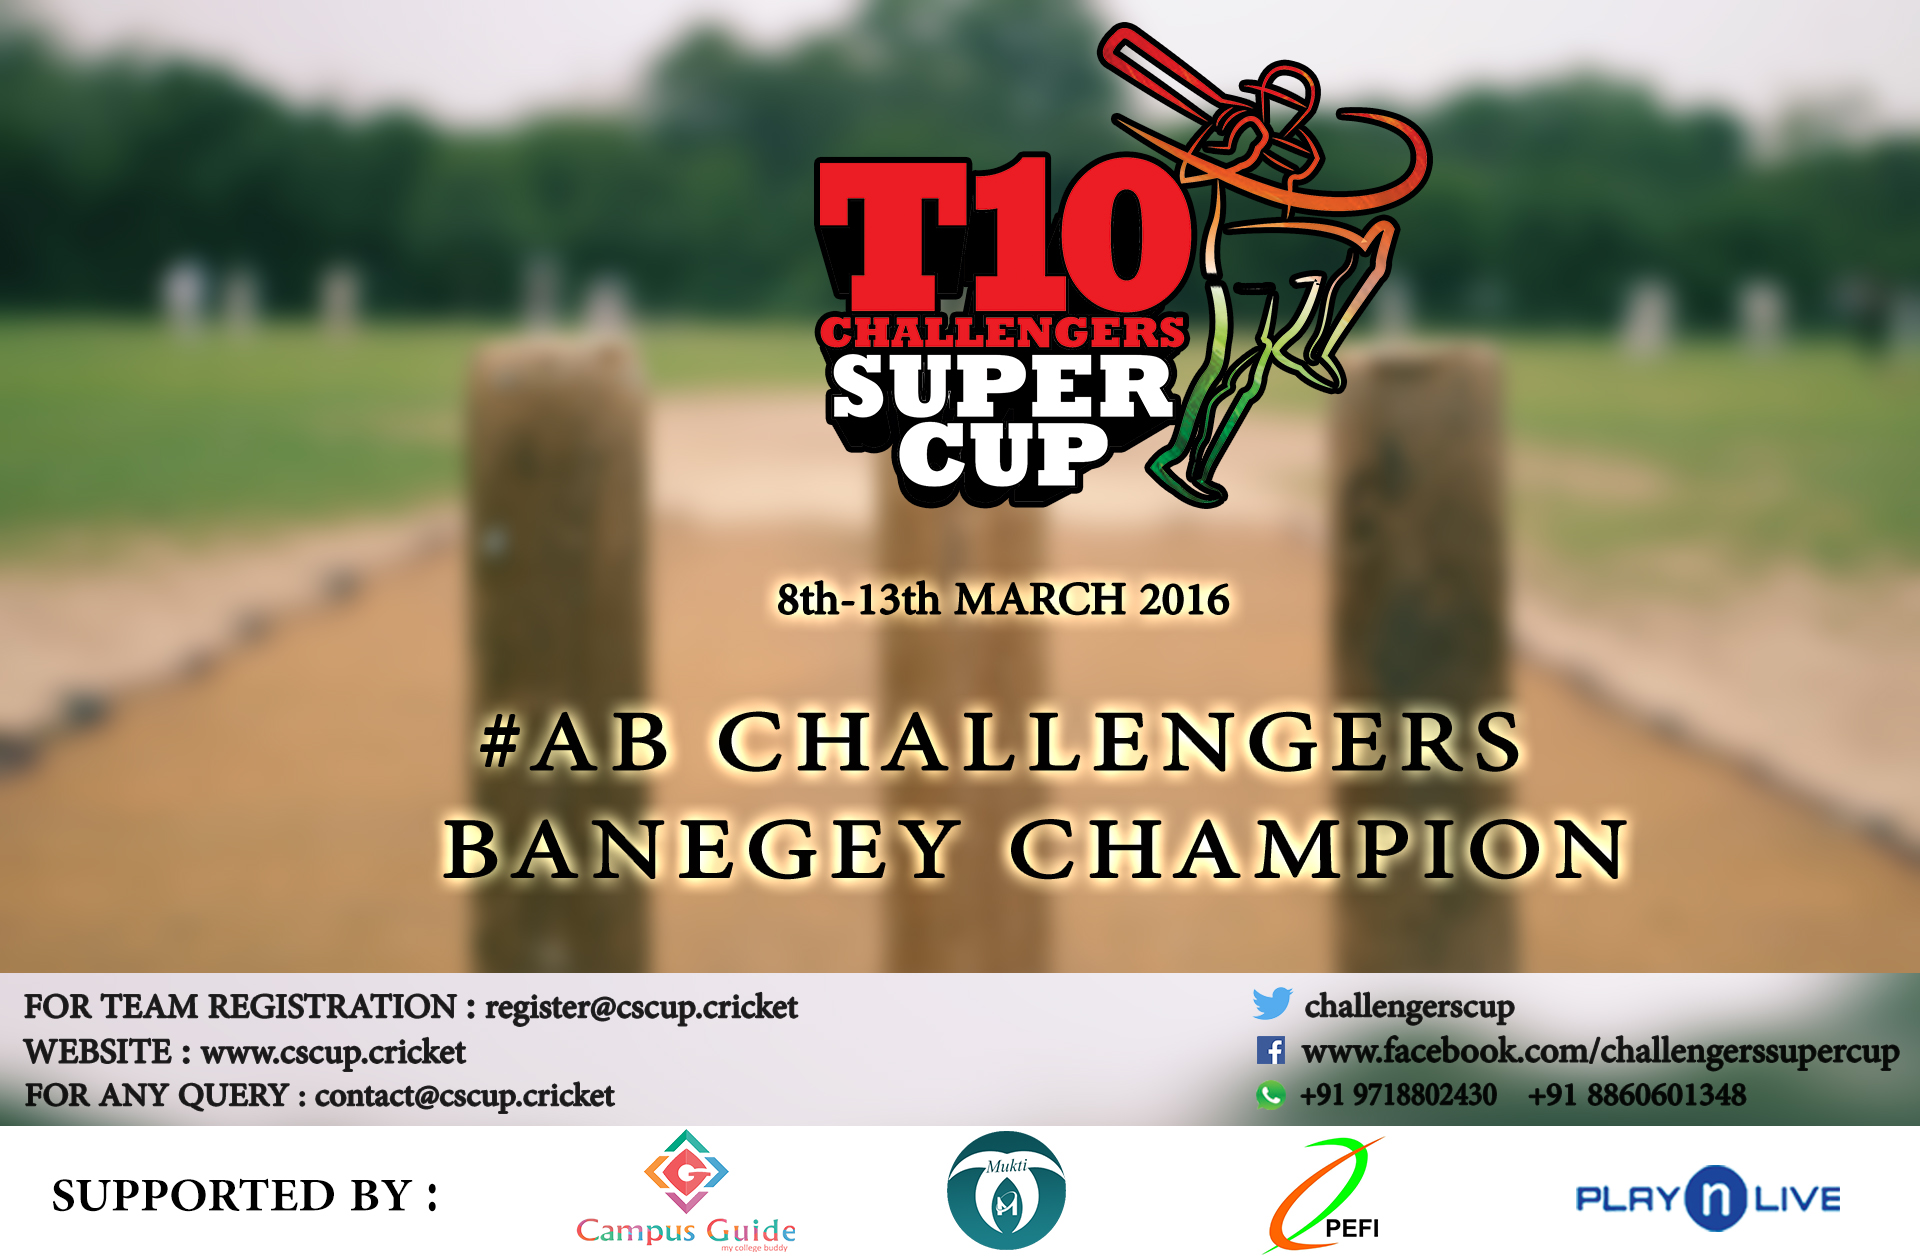 Book Online Tickets for T10 Challengers Super Cup, NewDelhi. This season get ready to play T10 Cricket Tournament. From 08th March 2016 onwards till 13th March 2016 in New Delhi. Facebook Why CS CUP T10 Challengers Super Cup (CSC) is a never ending one of its kind premium cricket tournament. CSC is a PAN INDIA